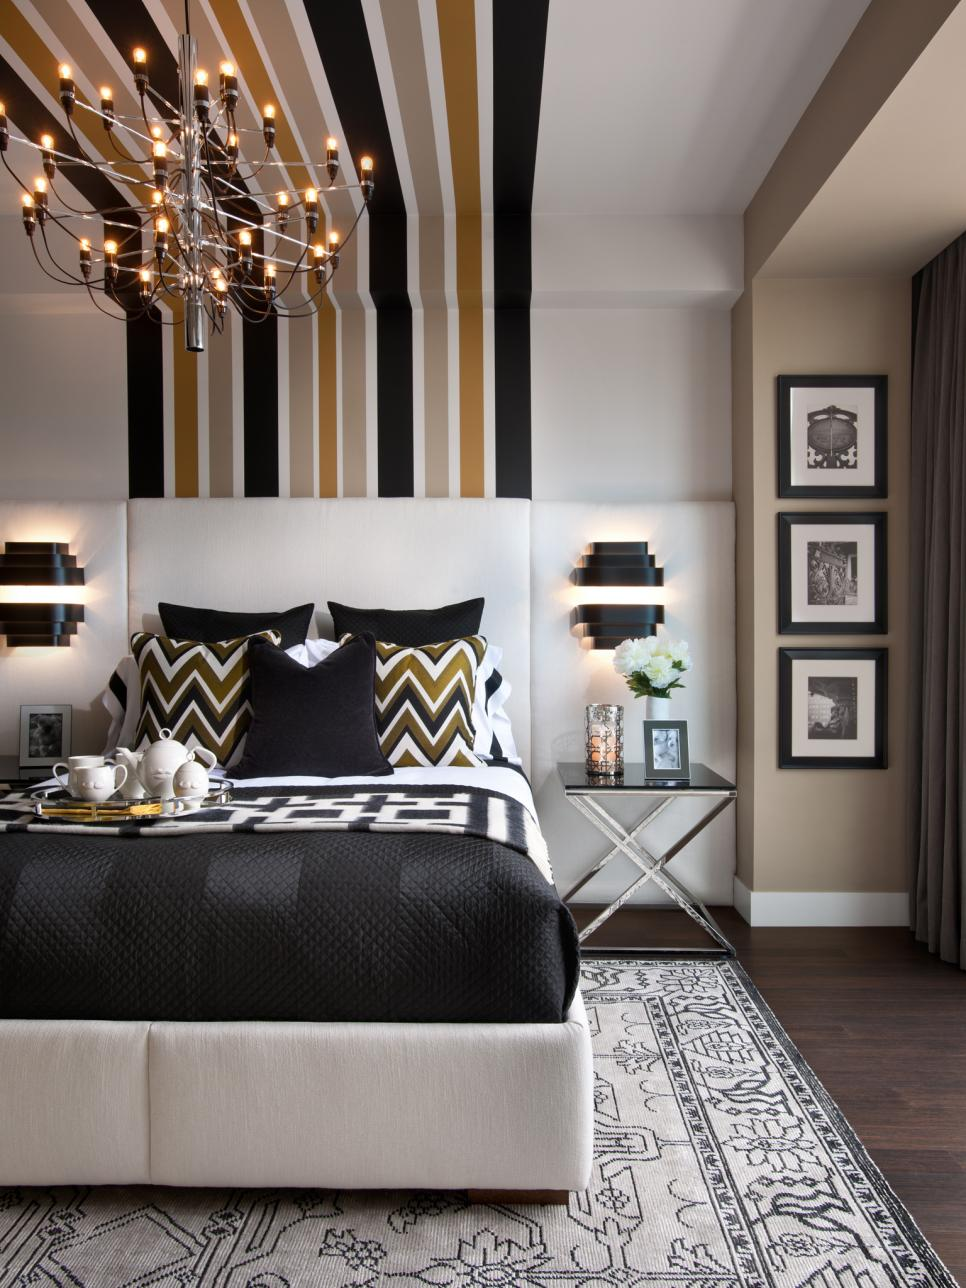 elegant bedrooms elegant bedrooms Bold and Elegant Bedrooms UO2013 master  bedroom 02 master bedroom hero v. Bold and Elegant Bedrooms   Master Bedroom Ideas